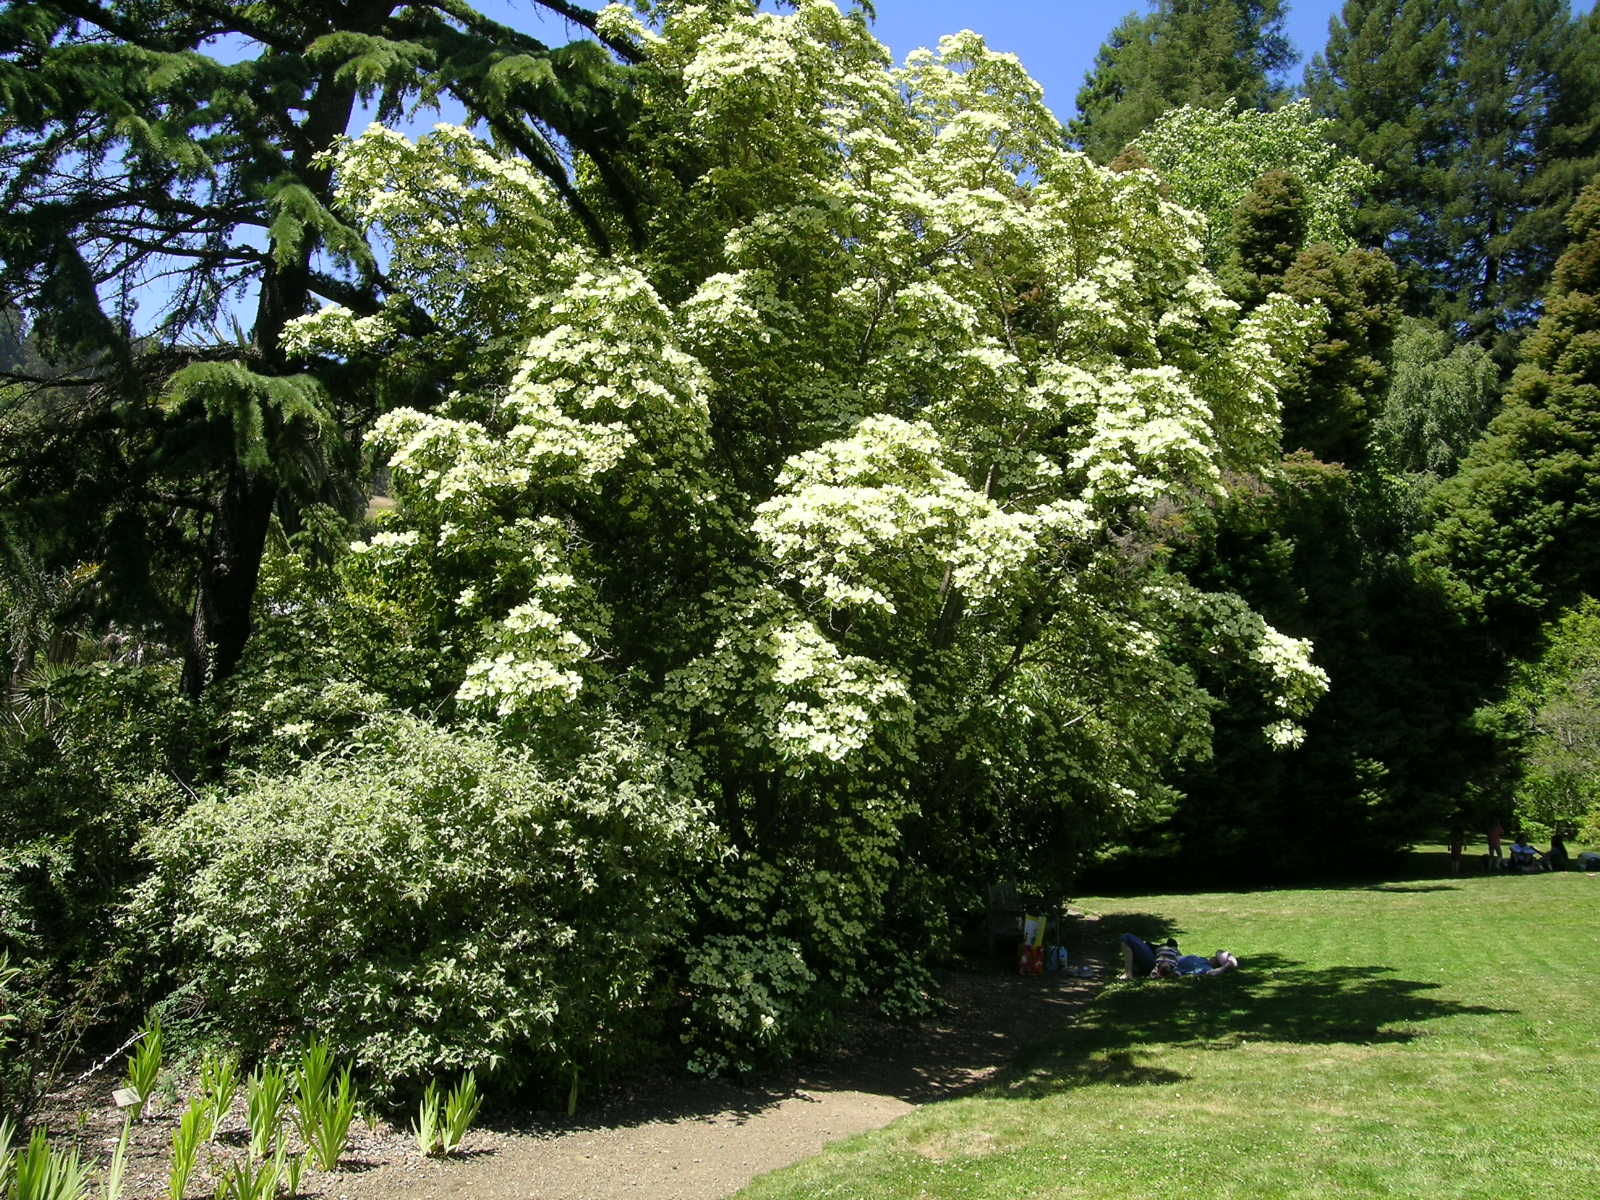 Berkeley butterfly blog cornus capitata evergreen dogwood for The evergreen